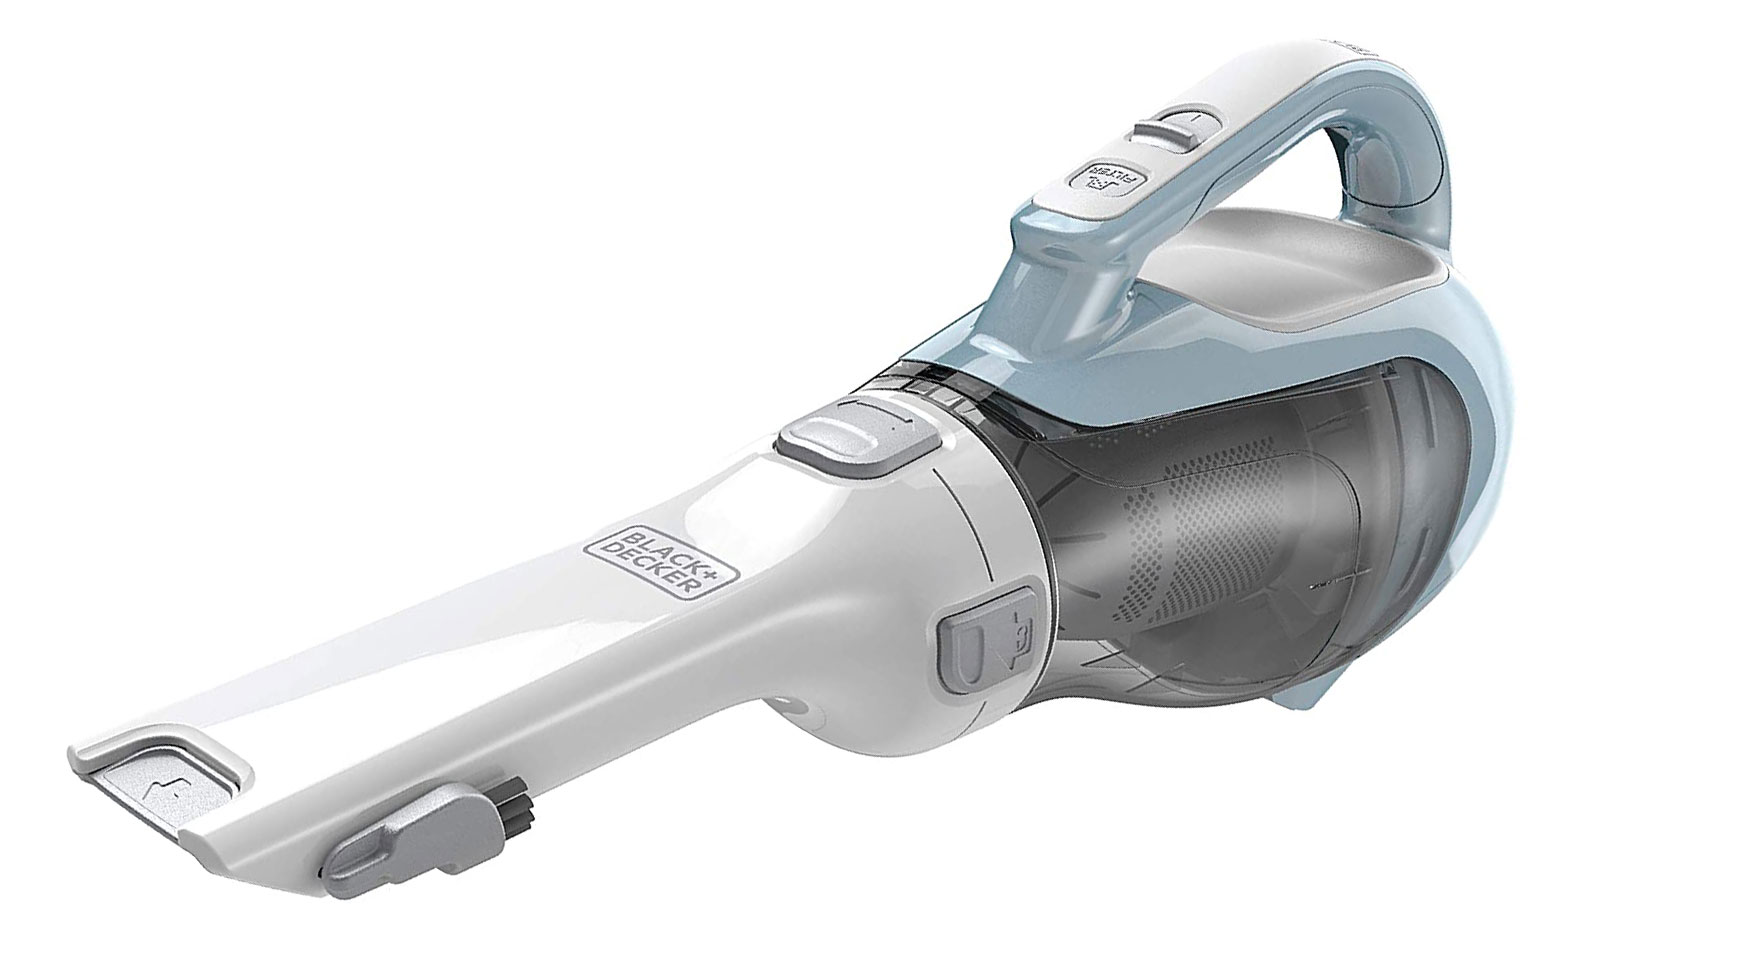 My favorite cordless vacuum is on sale today